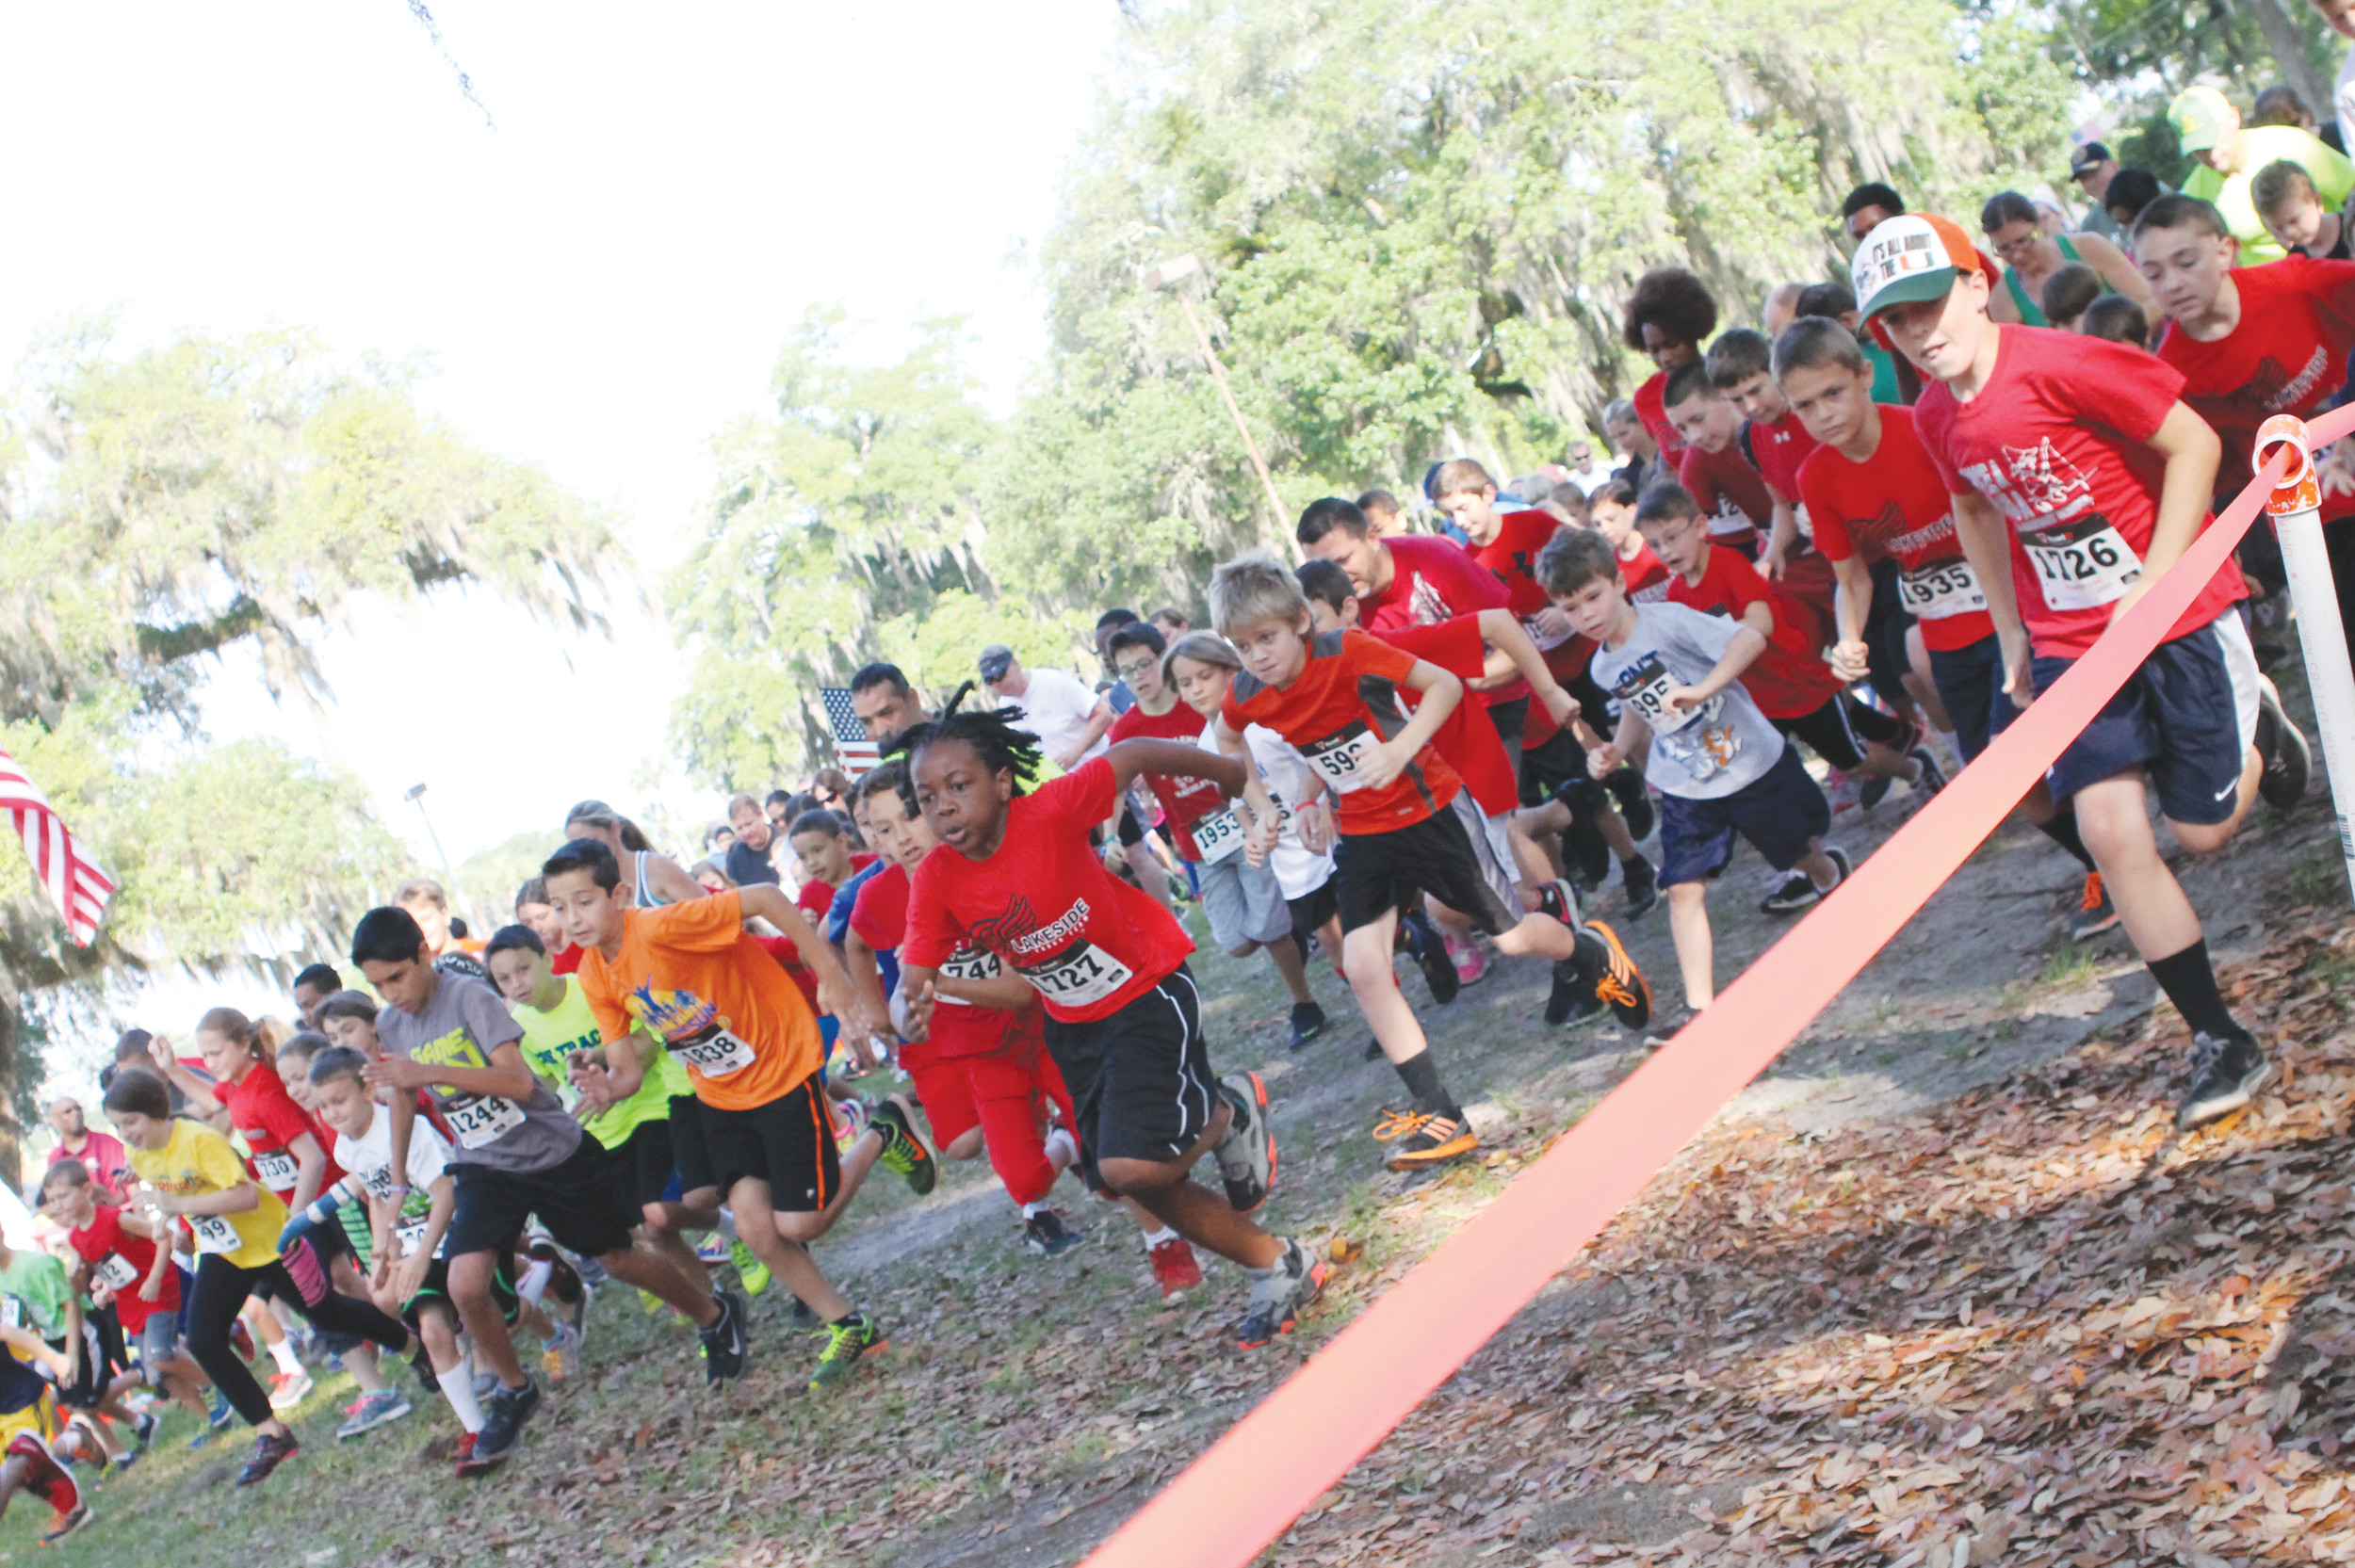 The annual Florida Striders Run to the Sun 8K race starts and finishes at the BestBet of Orange Park with an 8 a.m. start that benefits area elementary school run/walk clubs.